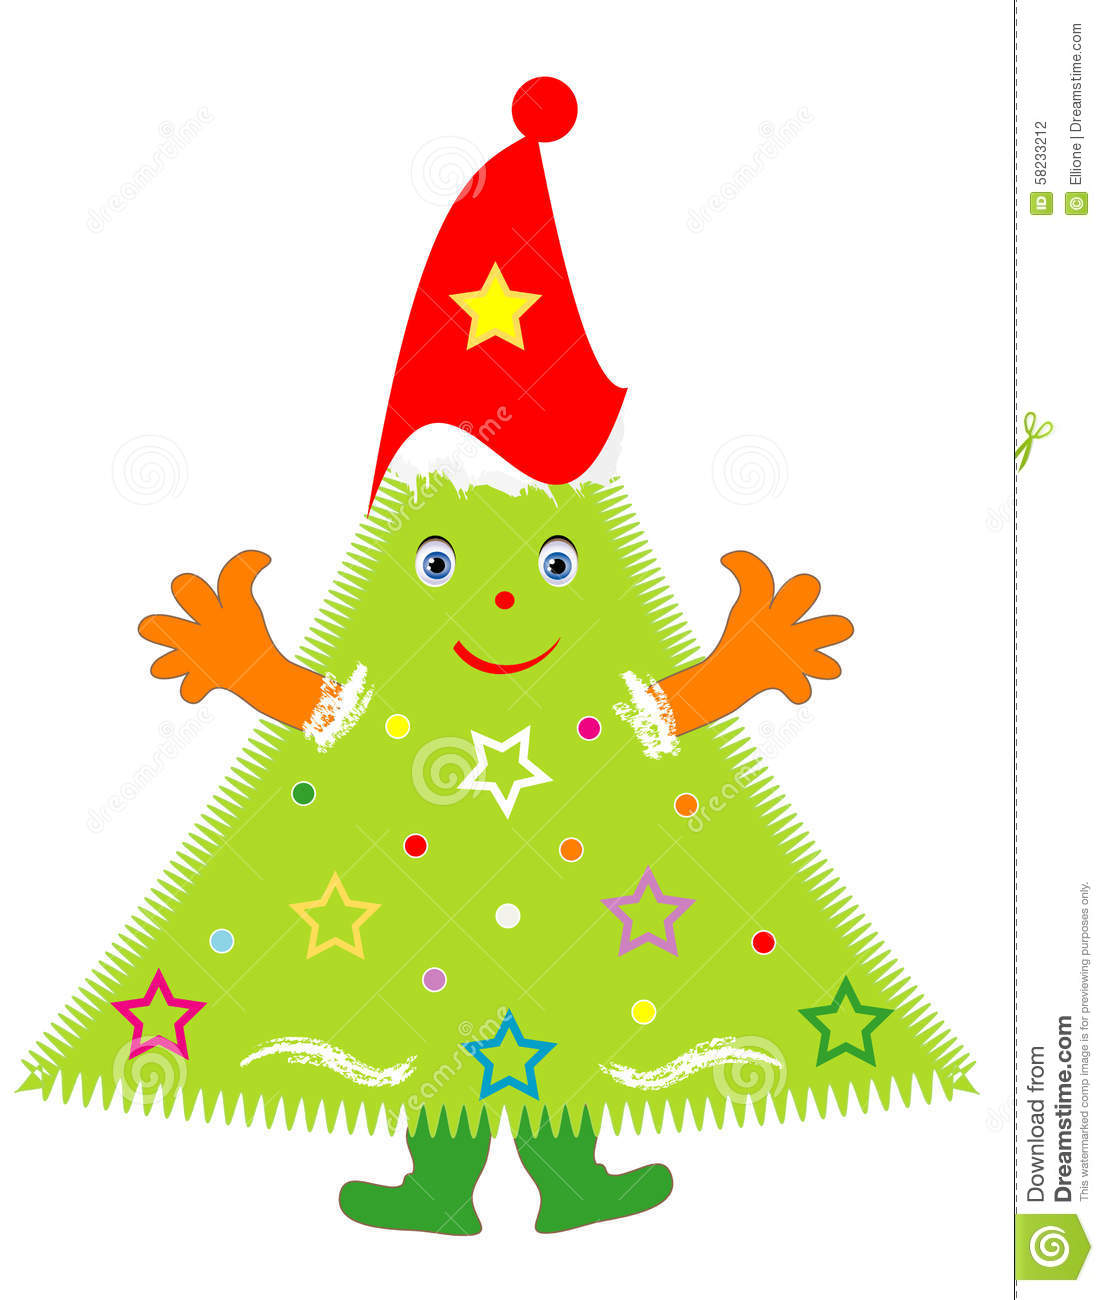 Jolly Christmas Tree stock vector. Illustration of colored - 58233212